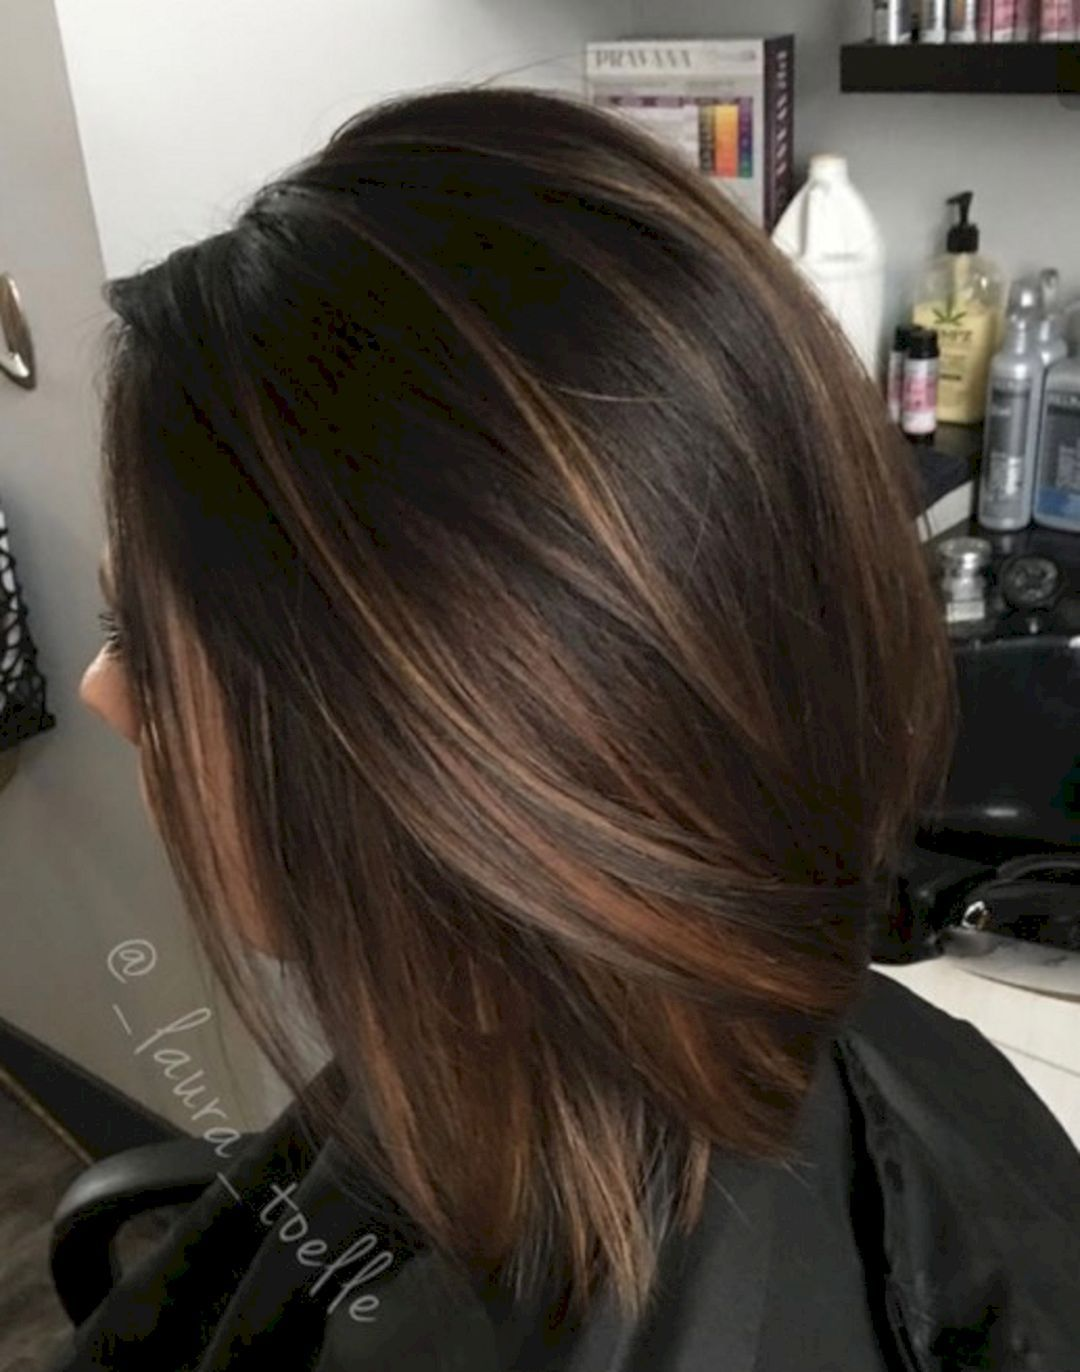 50 Beautiful Fall Hair Color To Look More Pretty 370 Oosile Hair Styles Chocolate Brown Hair Color Brown Hair Colors